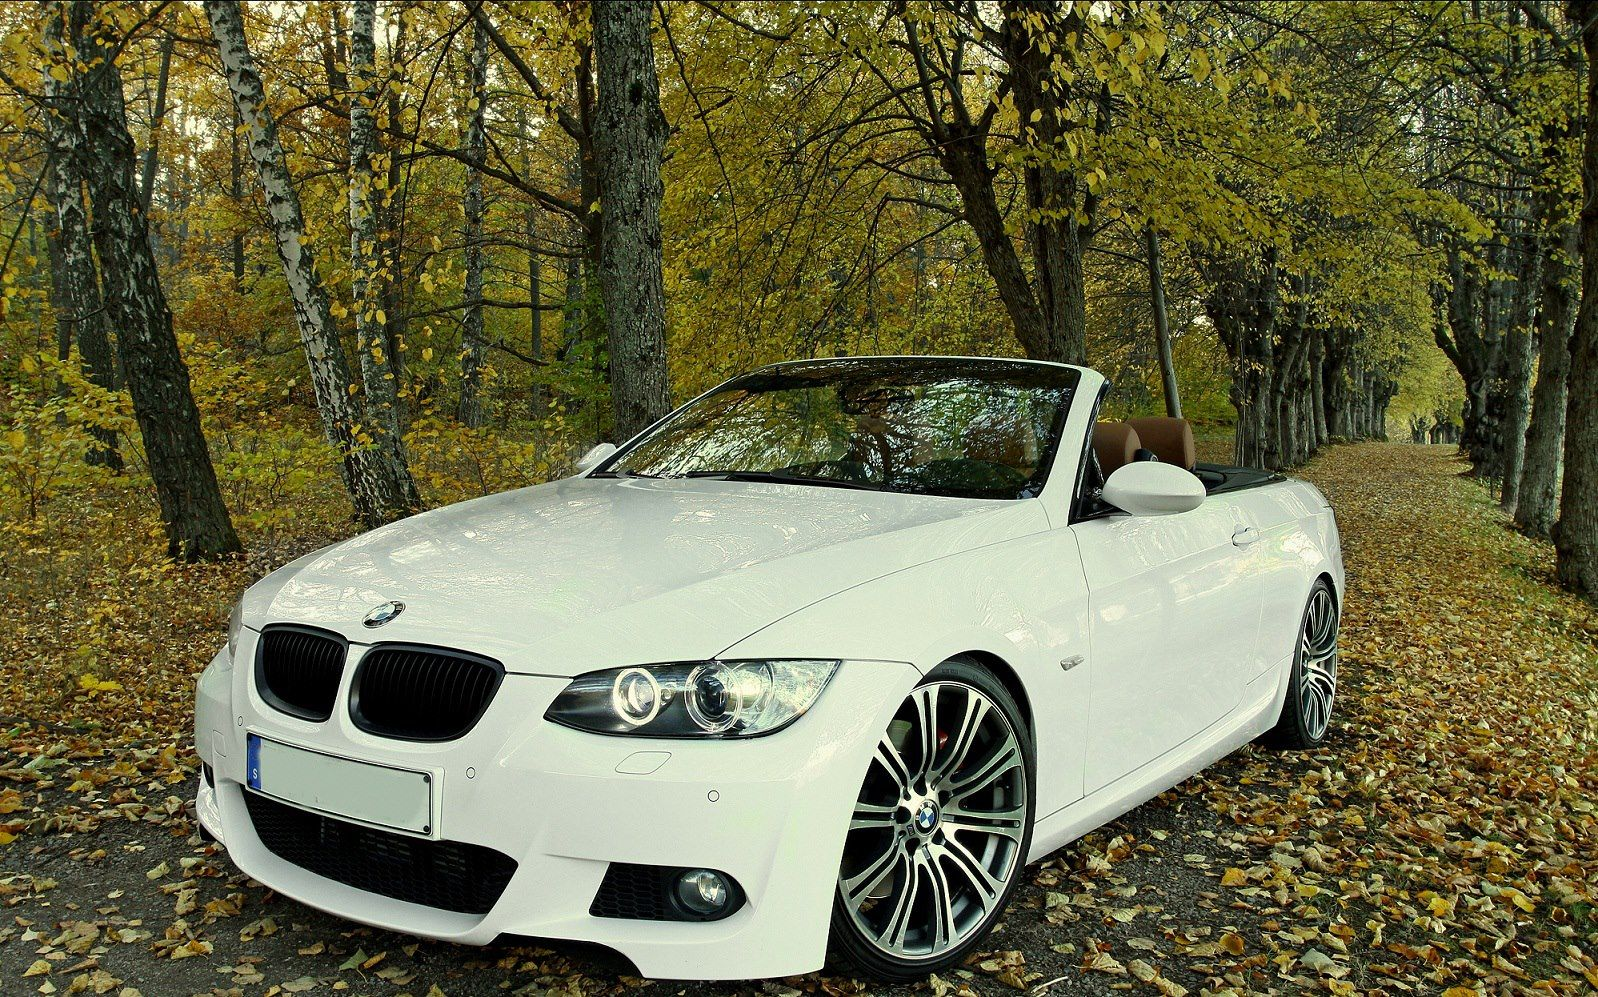 bmw e93 335i bmw pinterest bmw sweet and cars. Black Bedroom Furniture Sets. Home Design Ideas